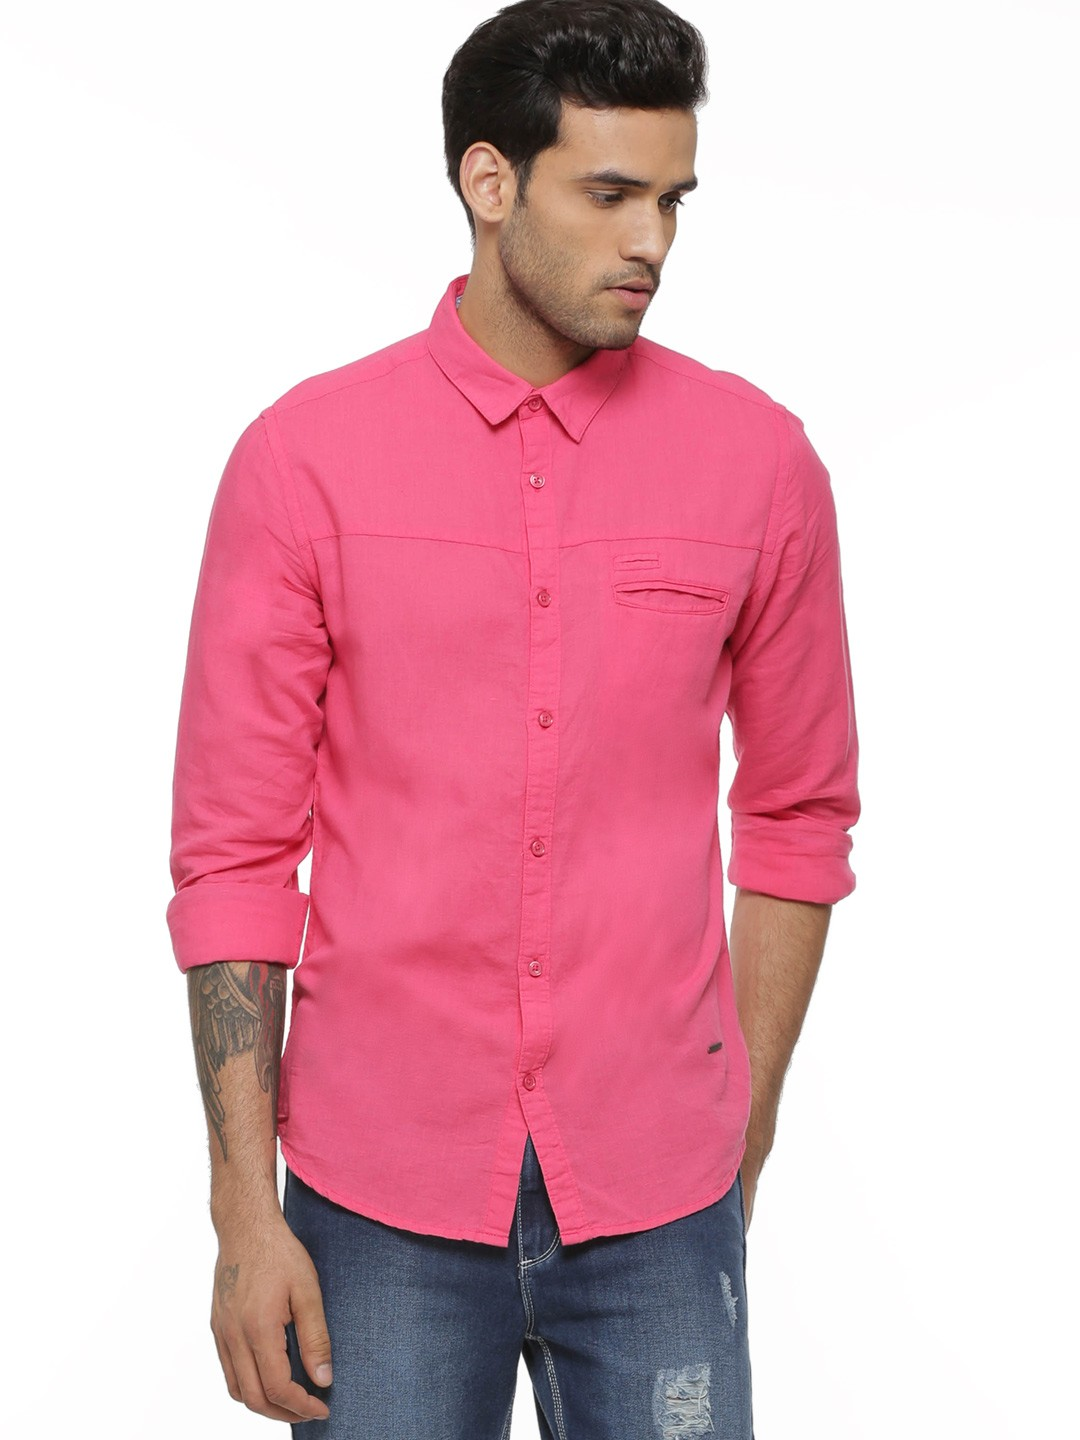 Buy POE Solid Shirt In Slim Fit For Men - Men's Pink Casual Shirts ...